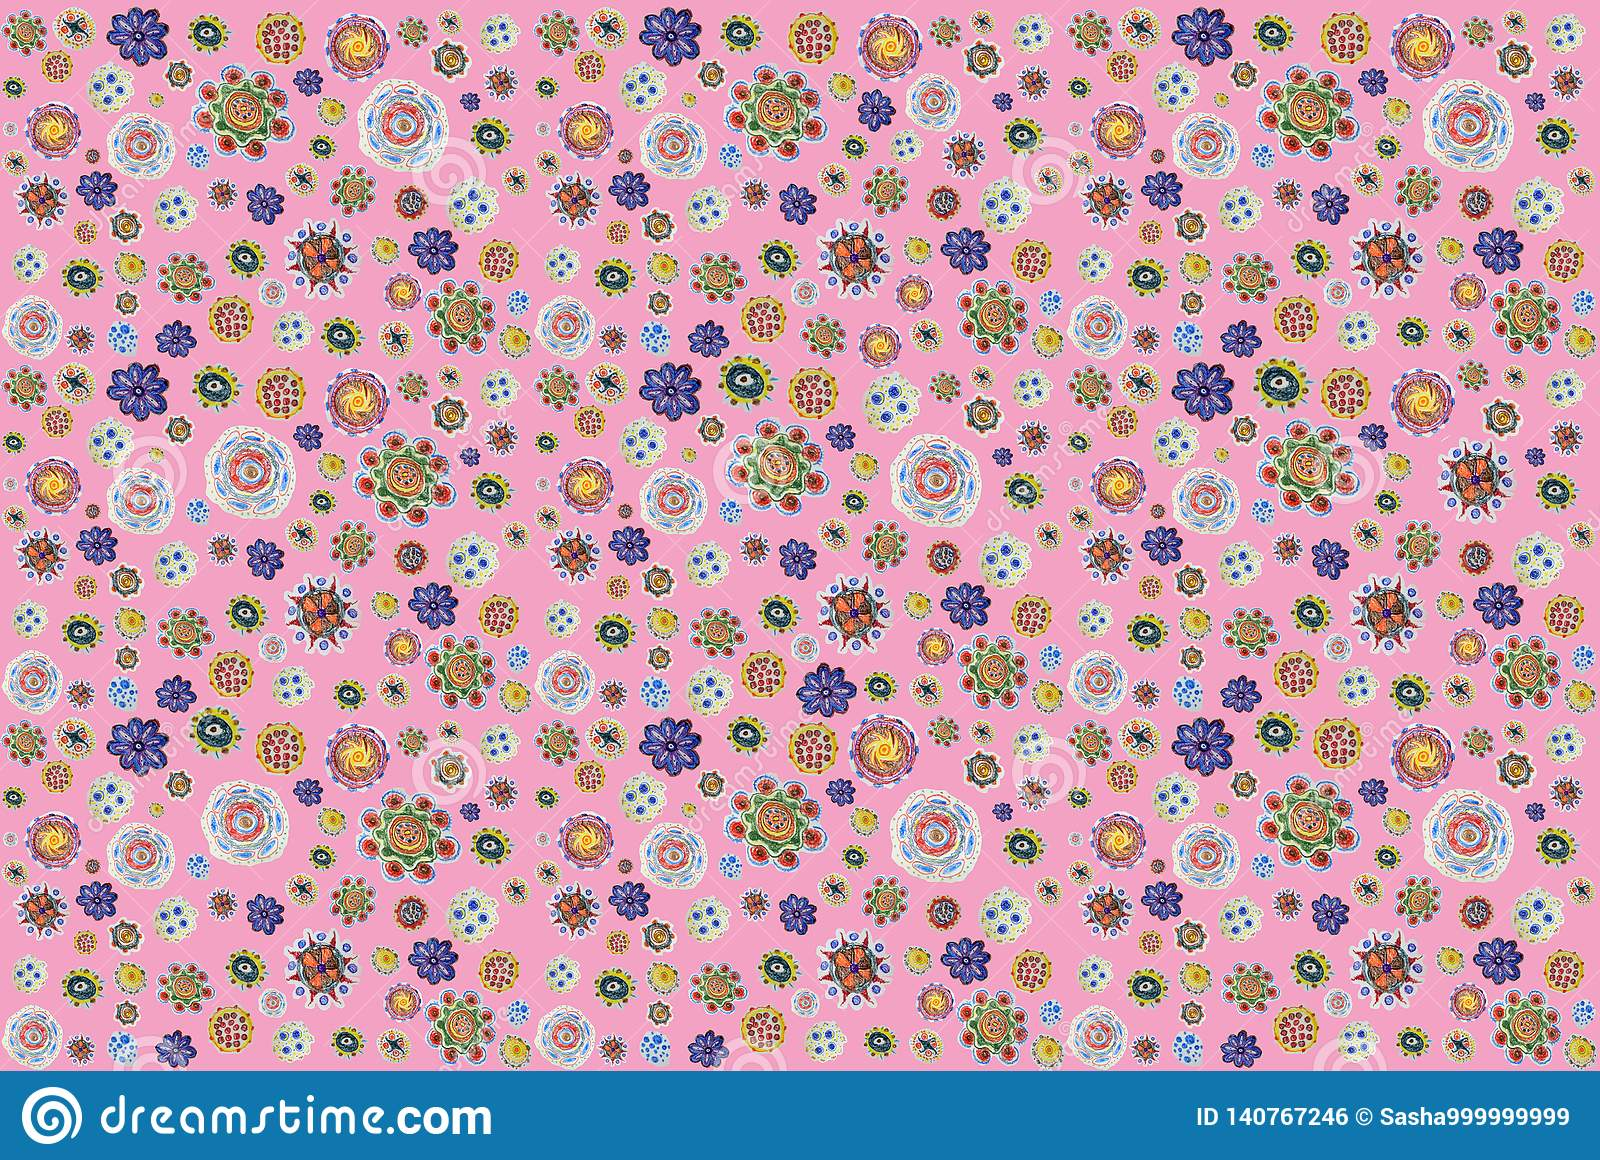 Background of pencil-drawn colorful flowers. hand drawing pattern